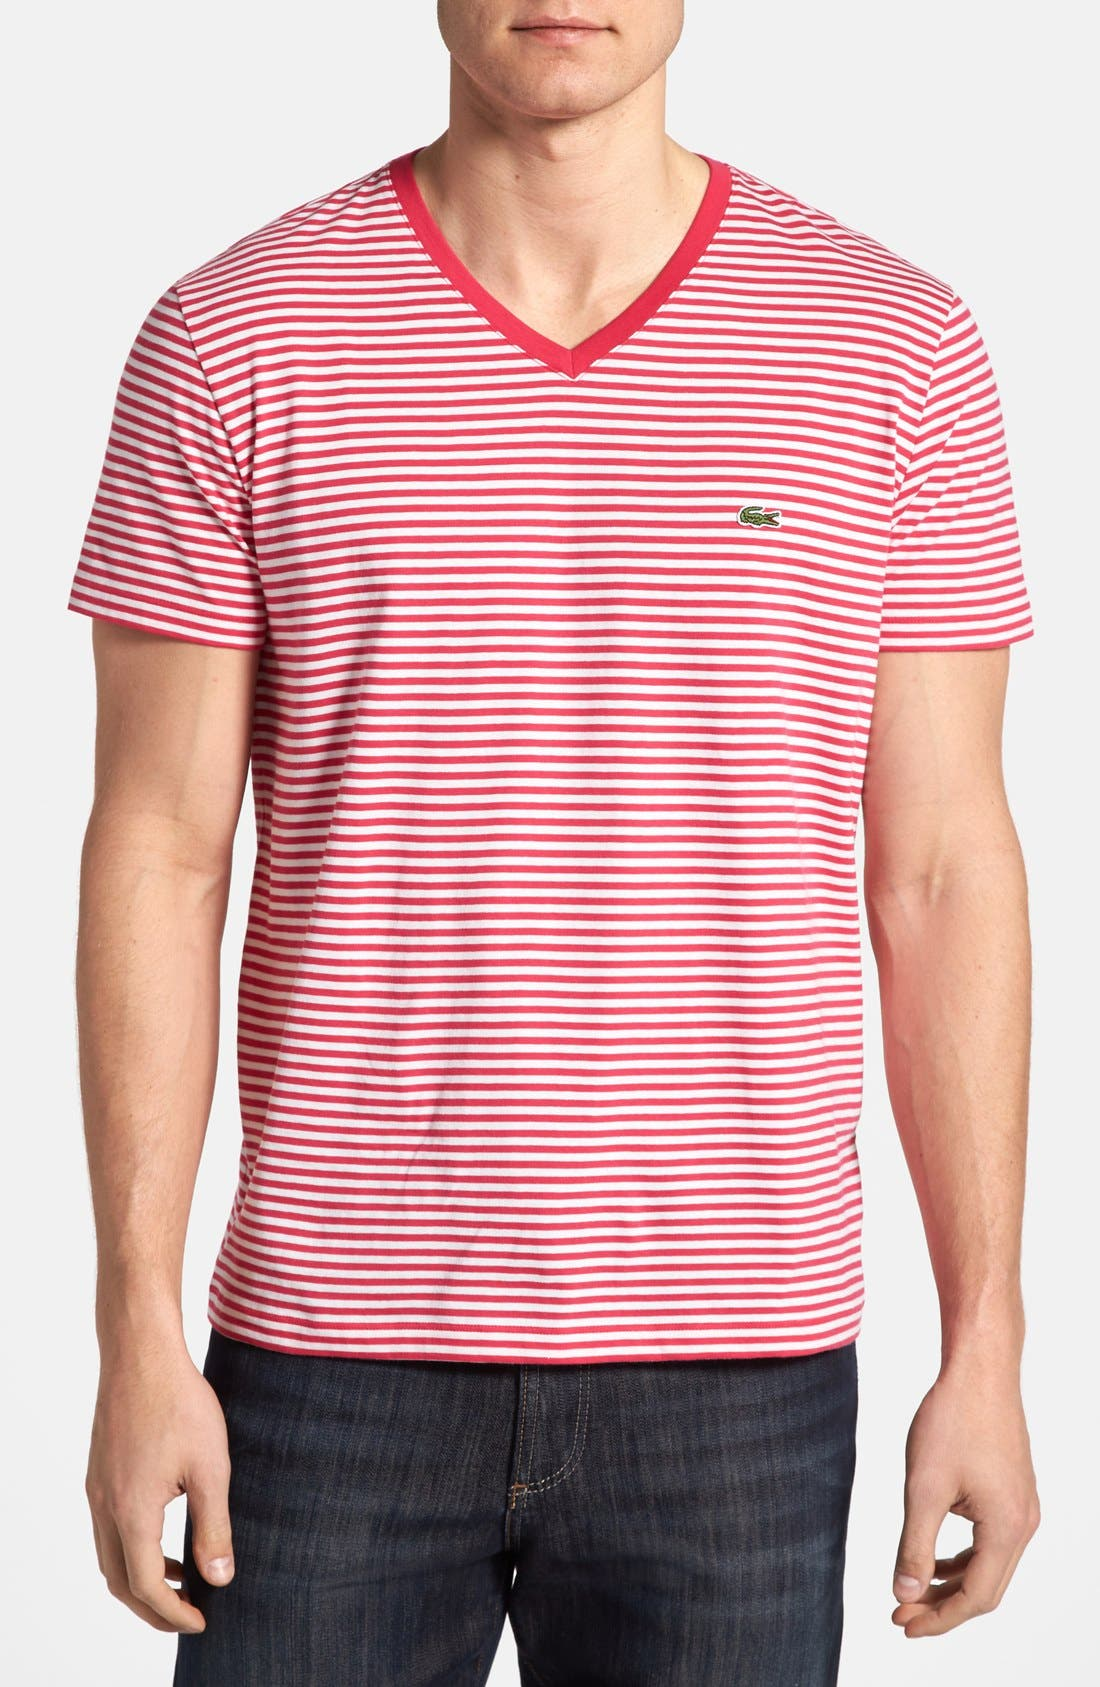 Main Image - Lacoste Heritage Fit Stripe Jersey V-Neck T-Shirt